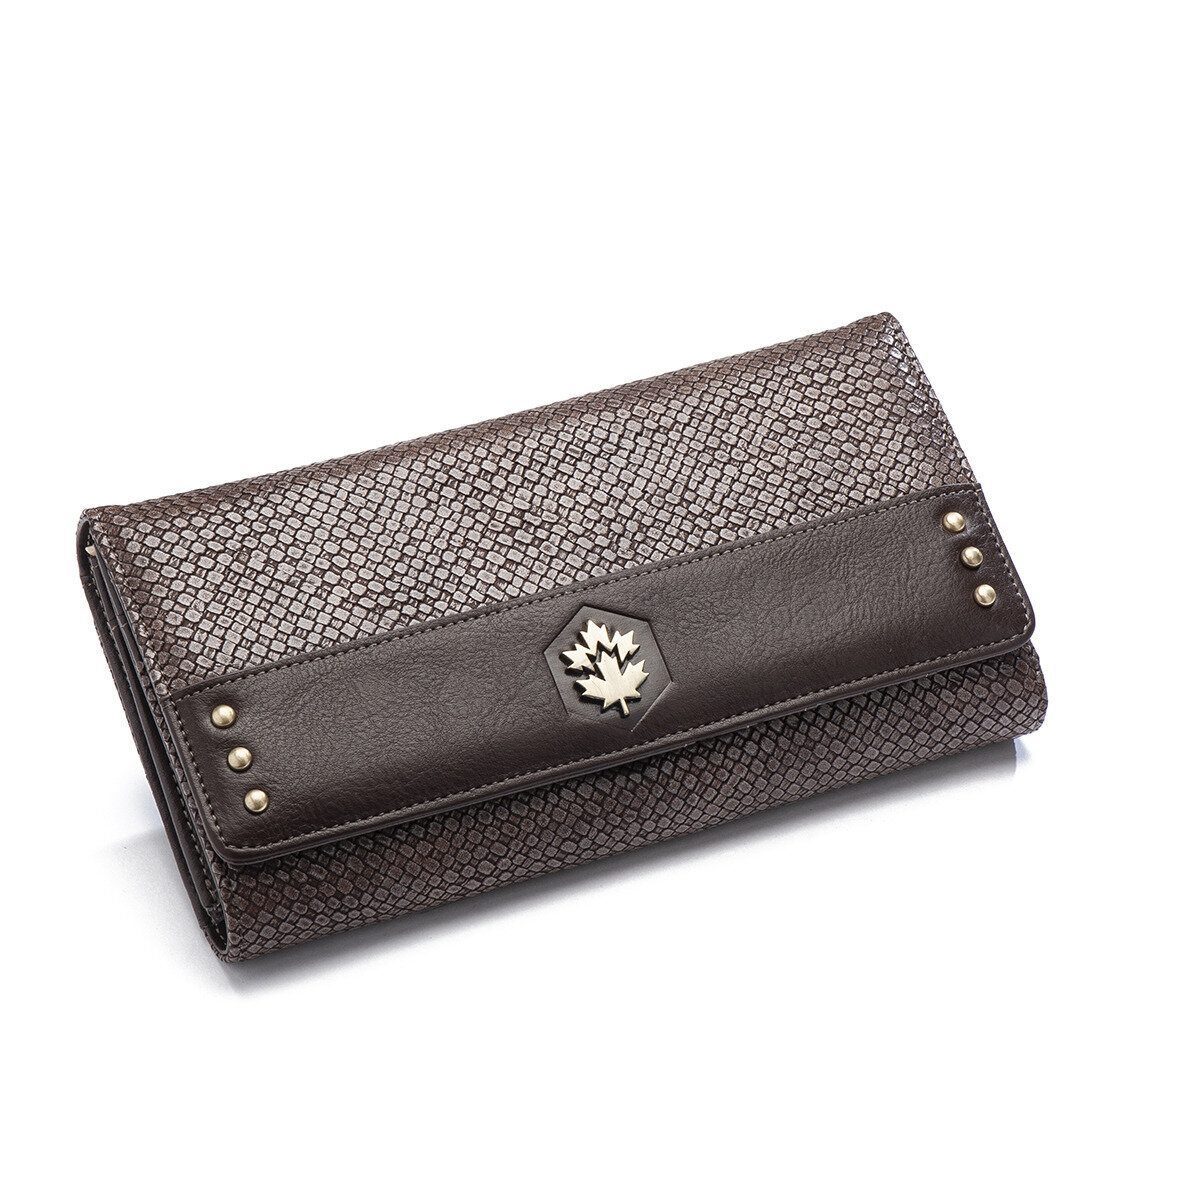 WPROJ.13 DK BROWN Woman Wallets